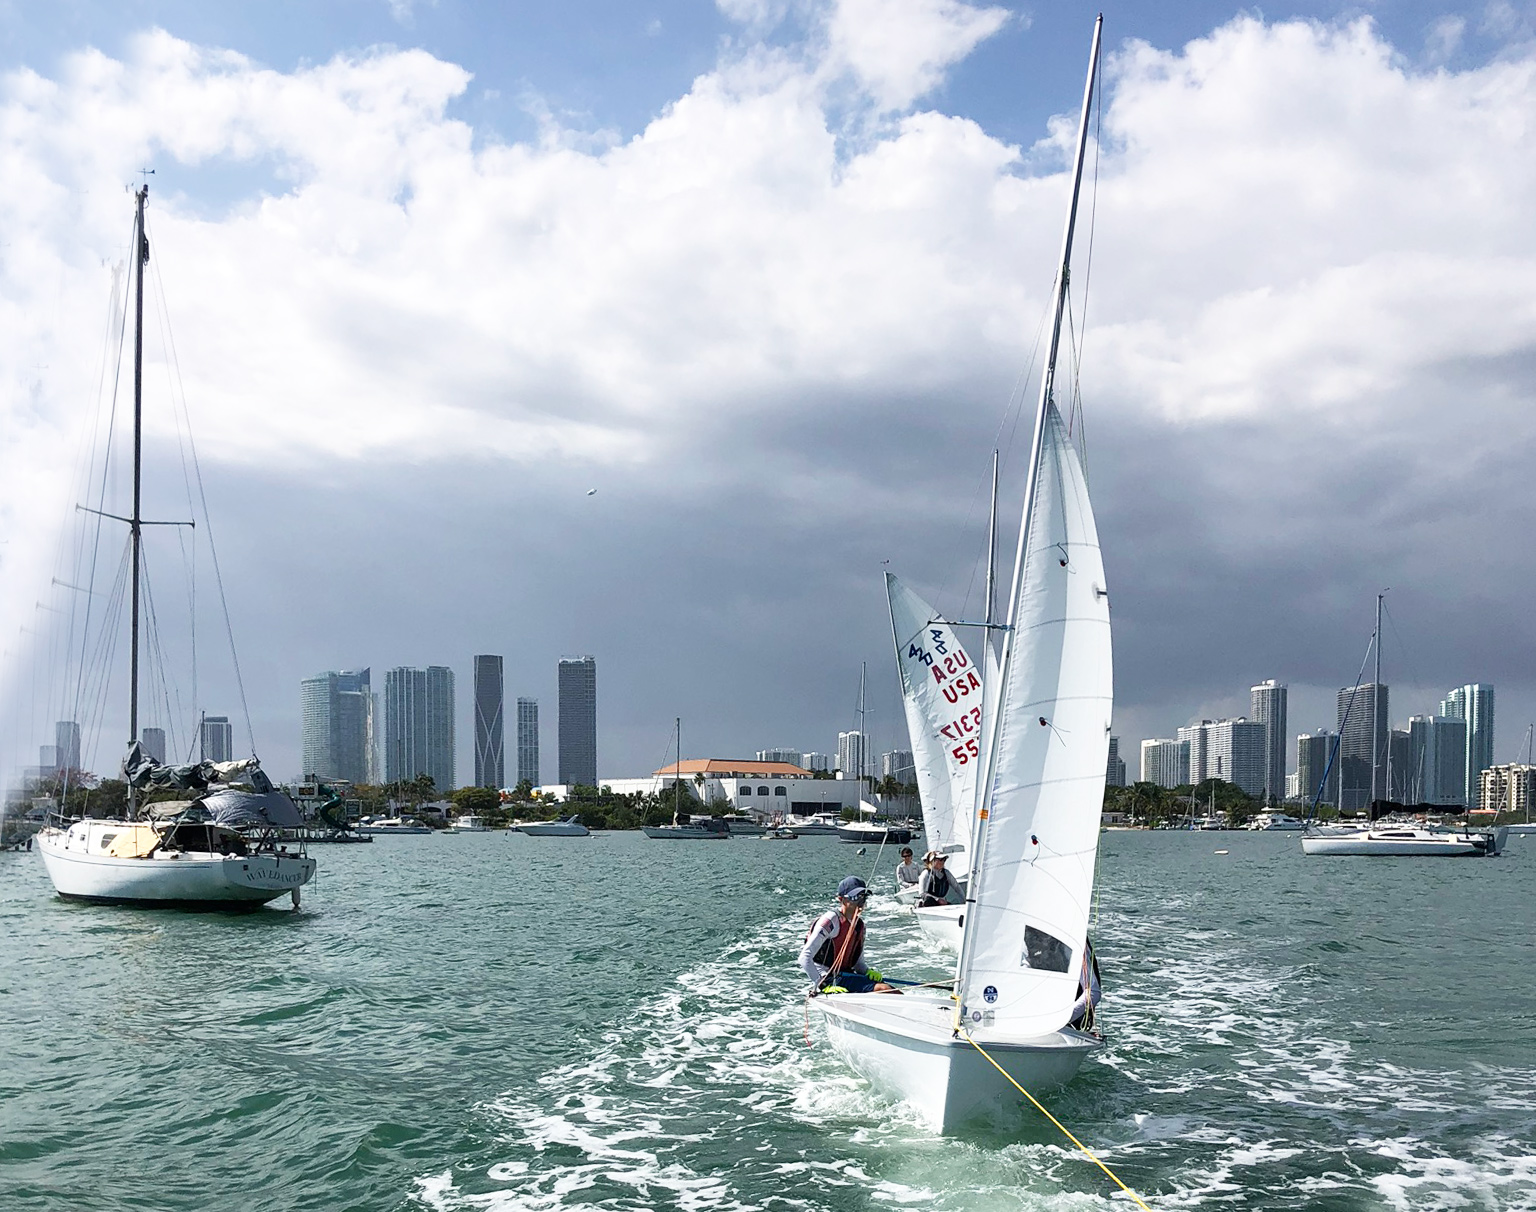 Haul to the open-water sailing east of Key Biscayne